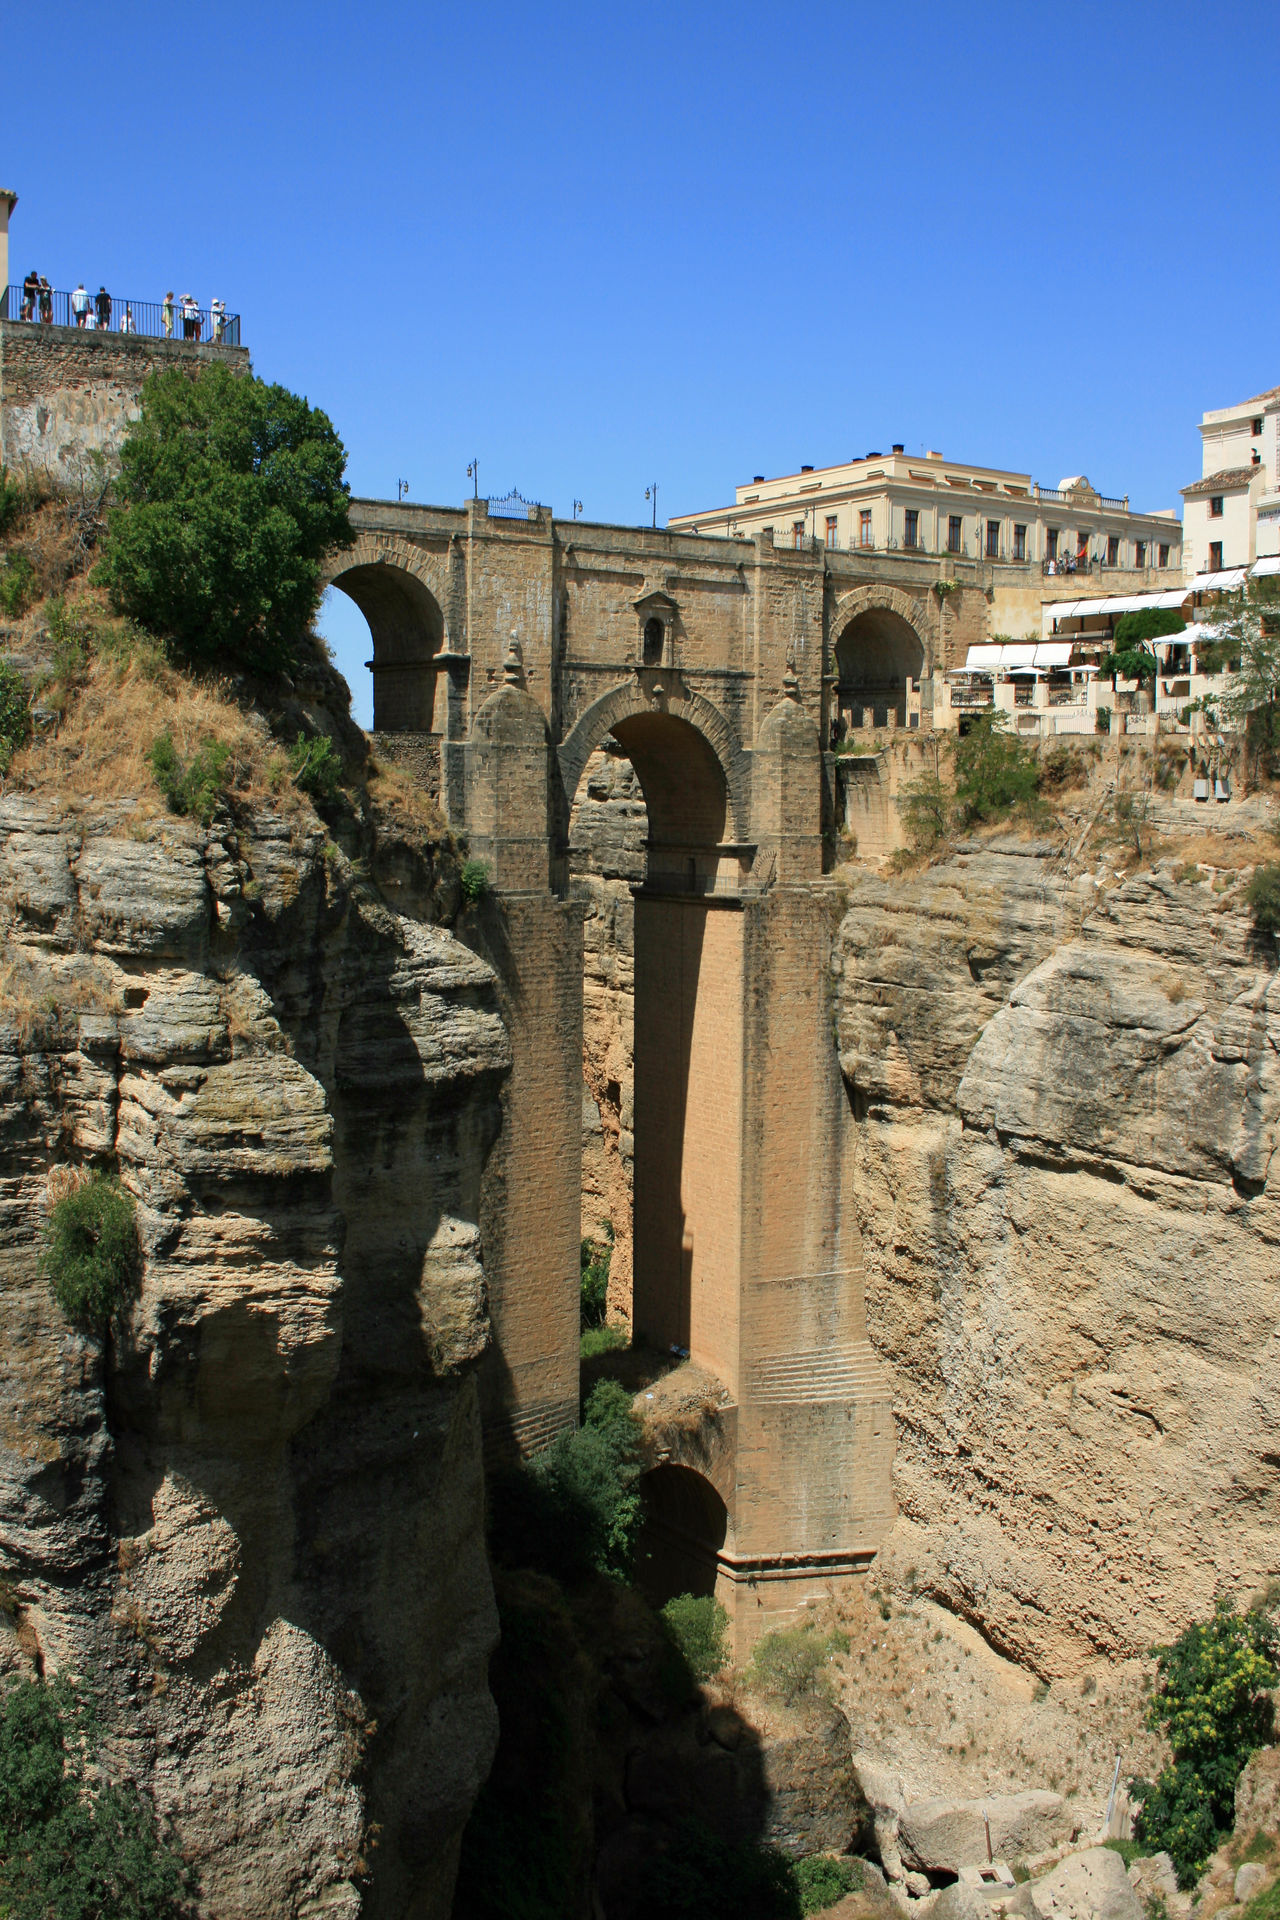 Views of Ronda, Costa Del Sol Andalucia Spain Andalusia Theme Bull Ring Bull Ring. Bull Statue Cliff Face Ronda Ronda Andalucia Ronda Bridge Ronda Bull Ring Ronda Costa Del Sol Ronda Scenery Ronda Spain Southern Spain SPAIN Spain Ronda Spain♥ Statue Views Of Ronda Landscapes With WhiteWall